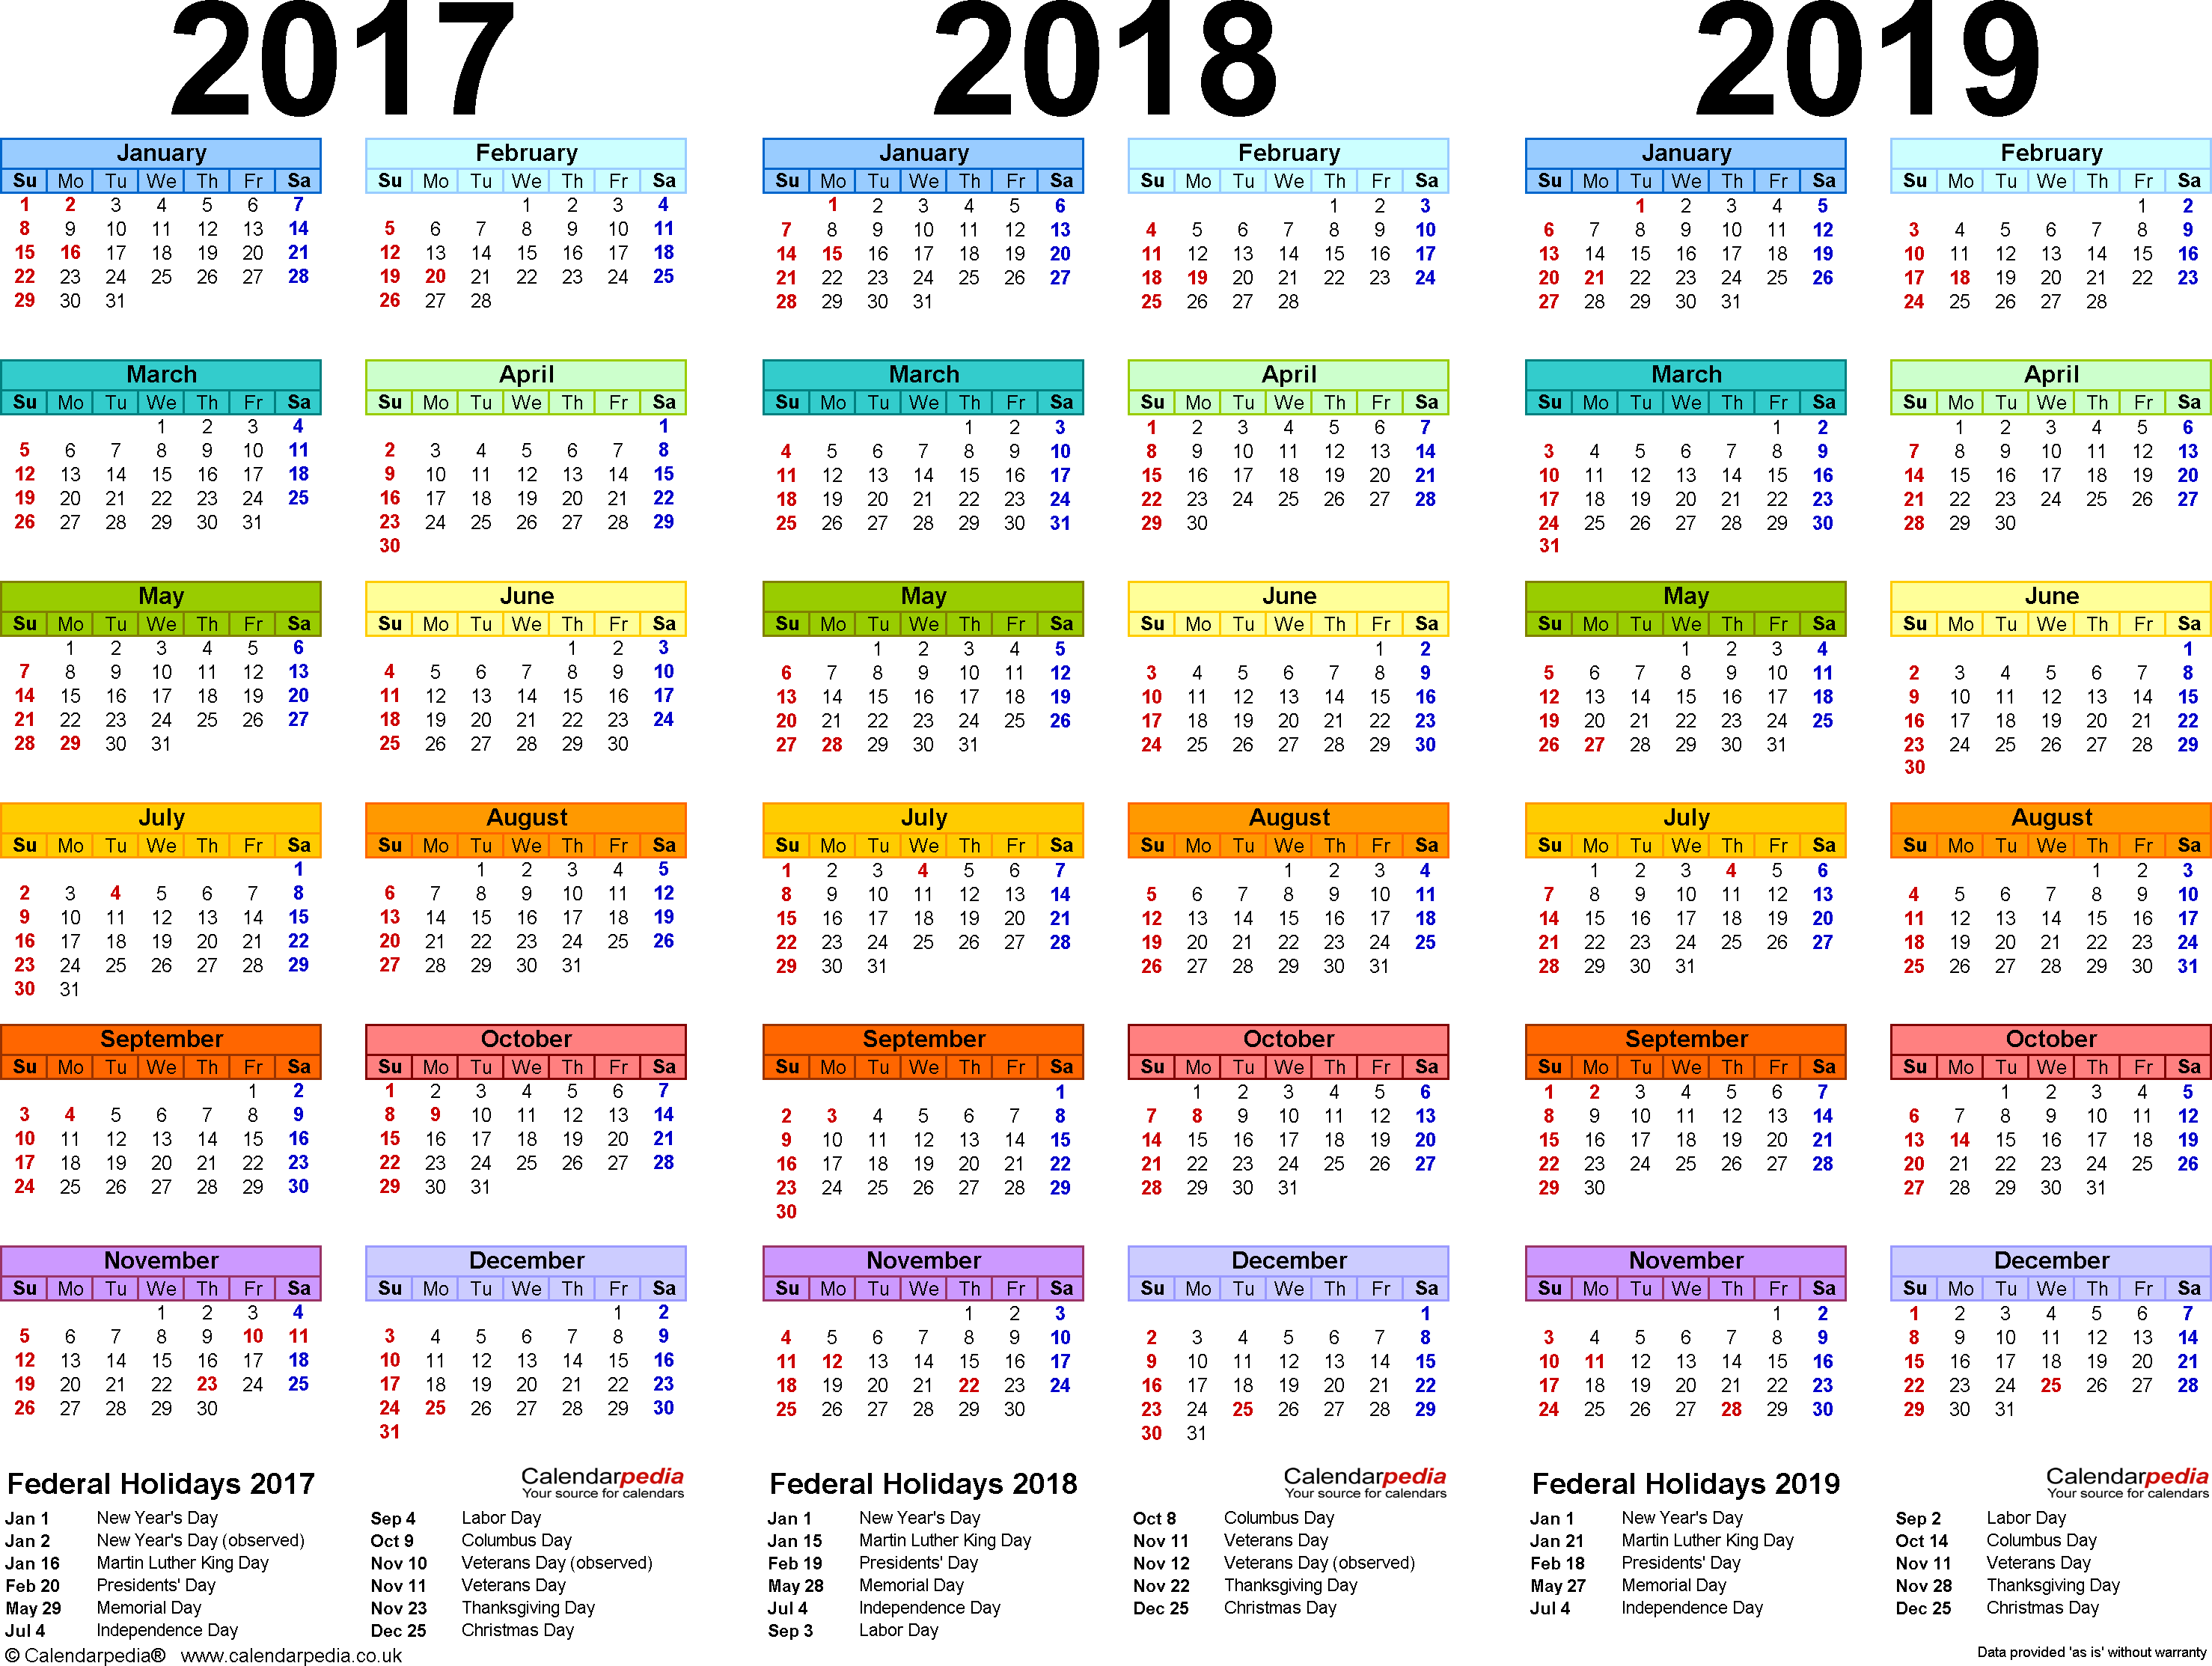 Calendar For Year 2019 India With 2017 2018 4 Three Printable PDF Calendars